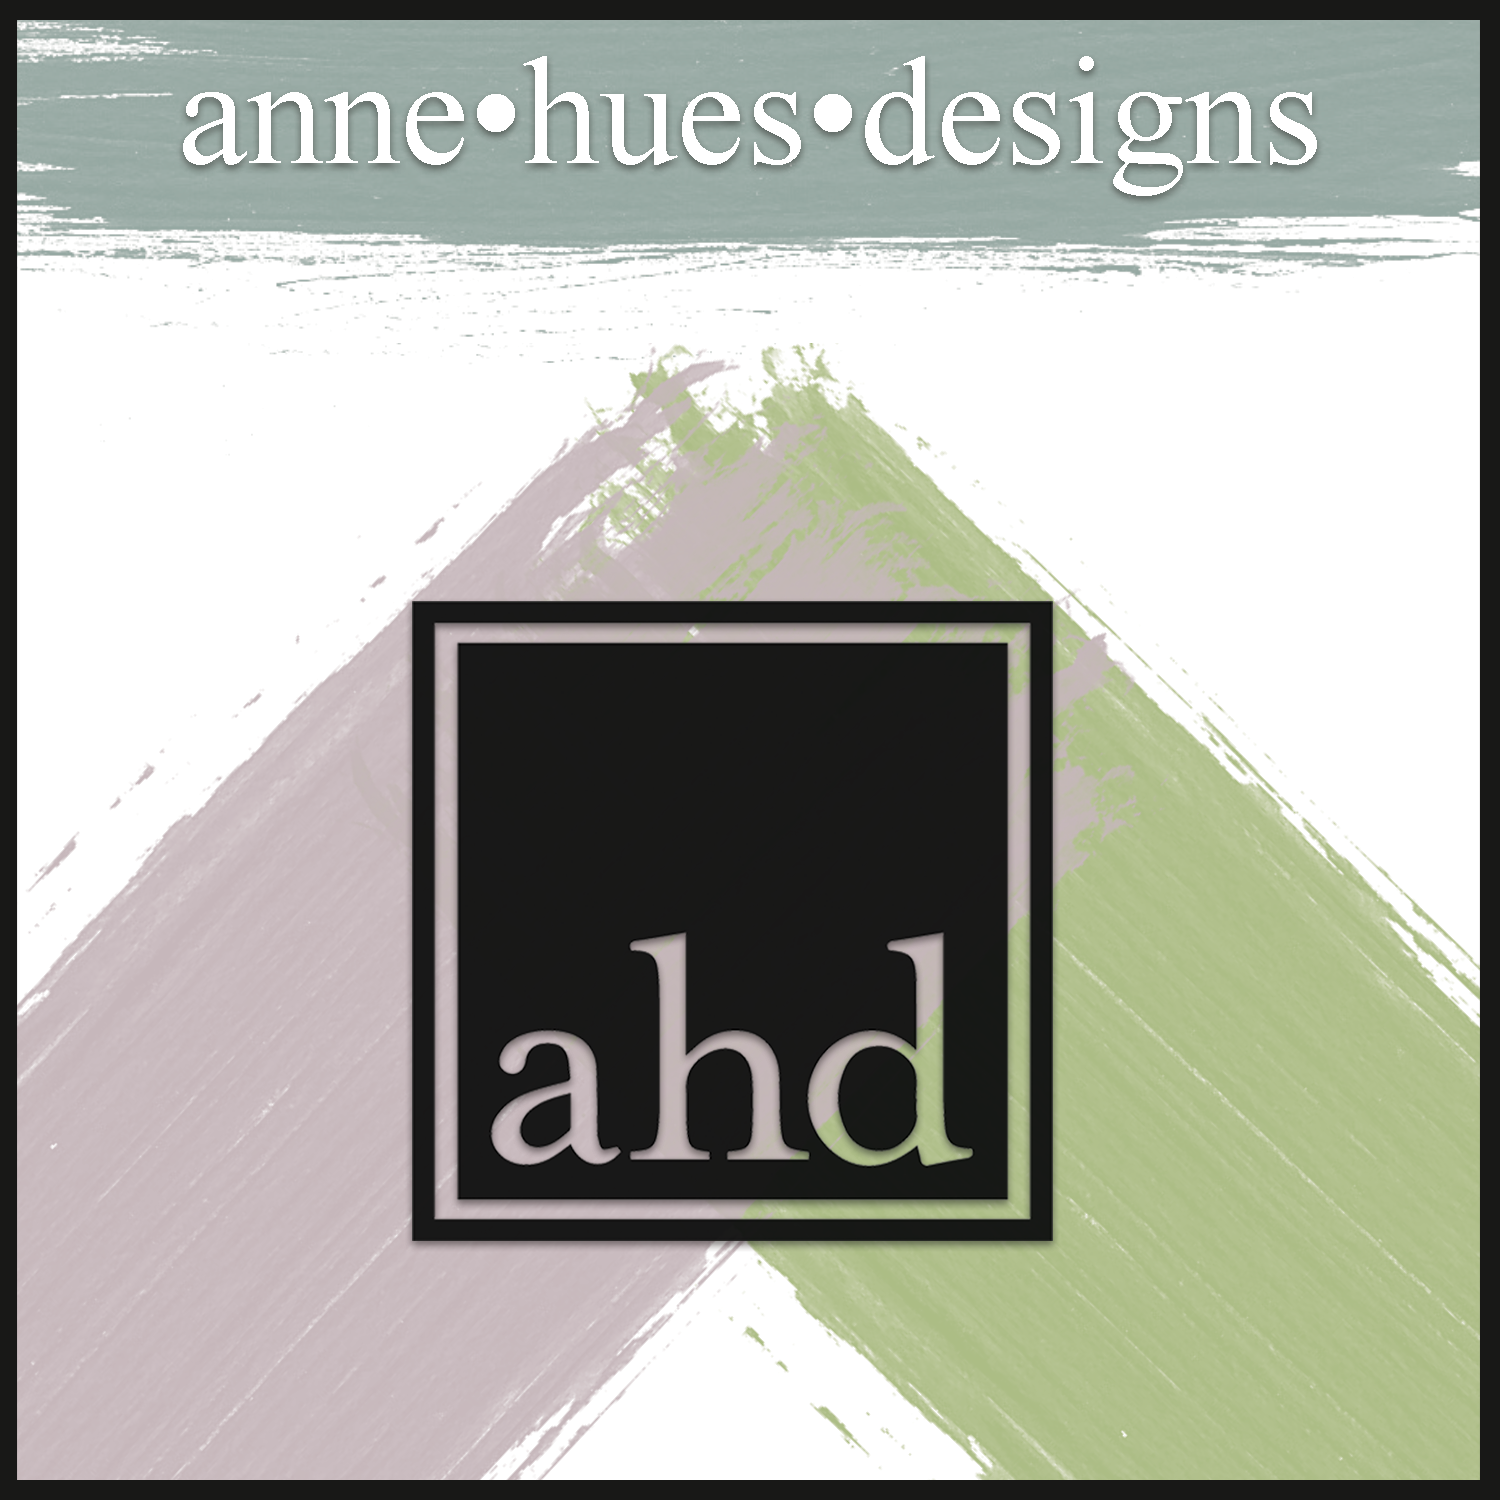 Chalk Paint® Stockist - Anne carries ALL 36 Chalk Paint colors, including the newest Lem Lem, the color of hope, to provide you endless options for your next project